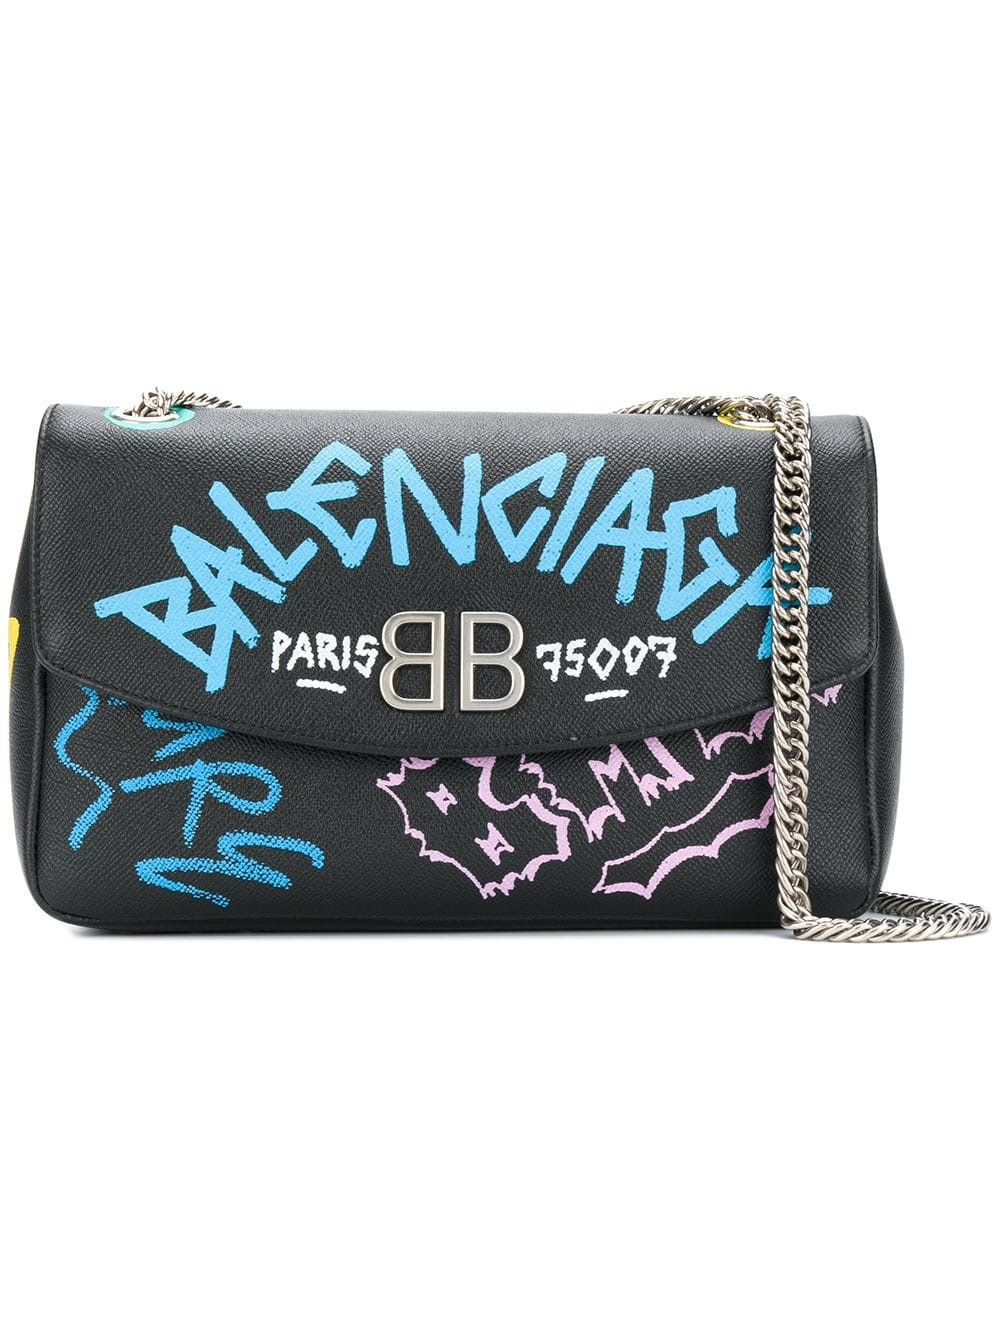 755db1f92b balenciaga GRAFFITI SHOULDER BAG available on montiboutique.com - 26697